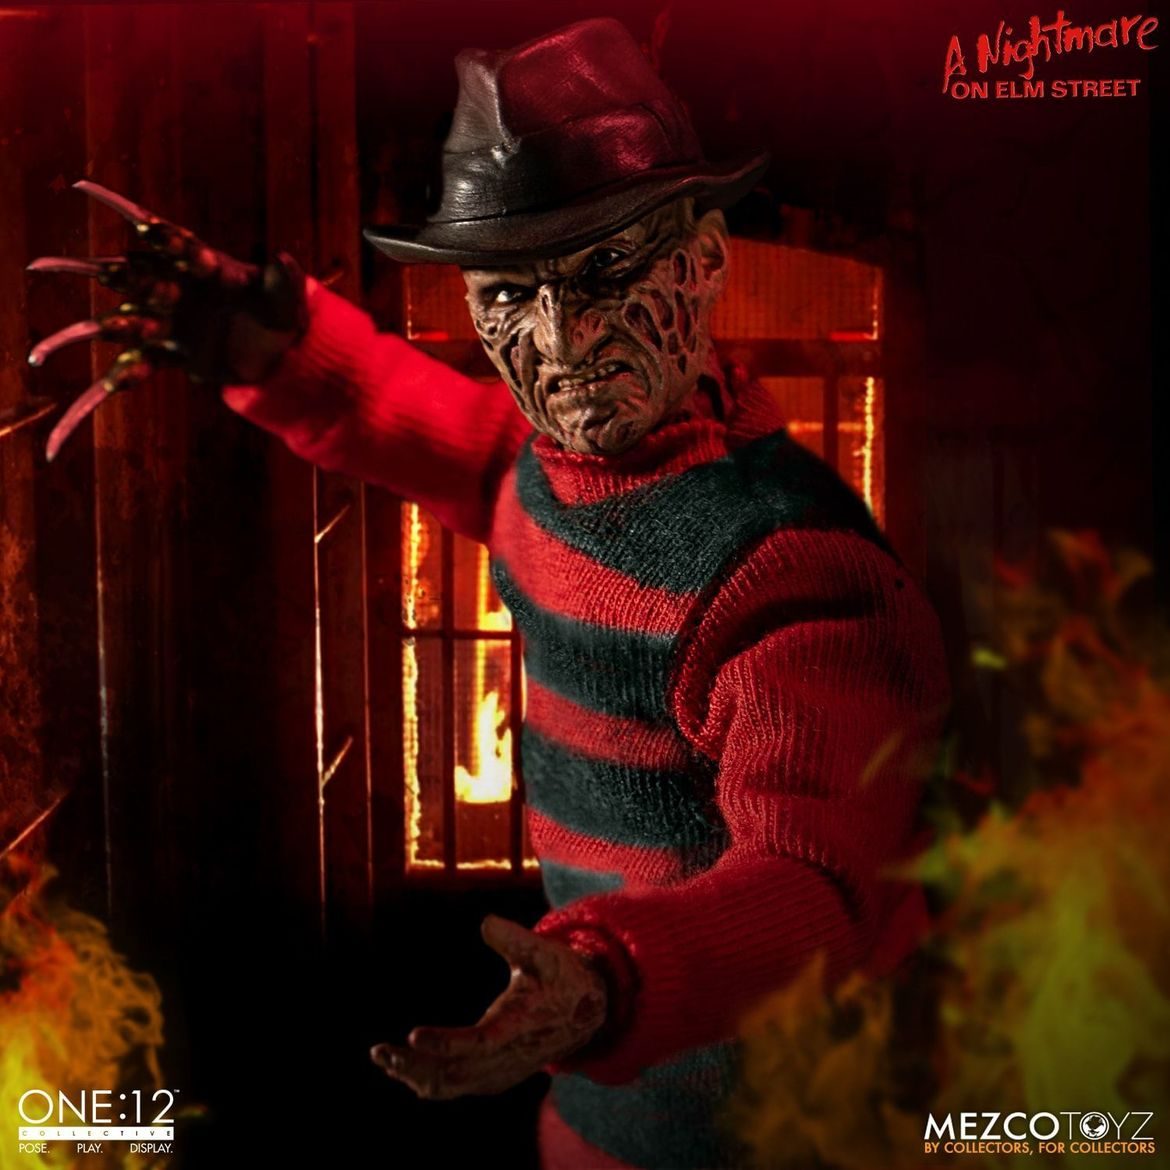 mezco one 12 collective nightmare on elm street freddy